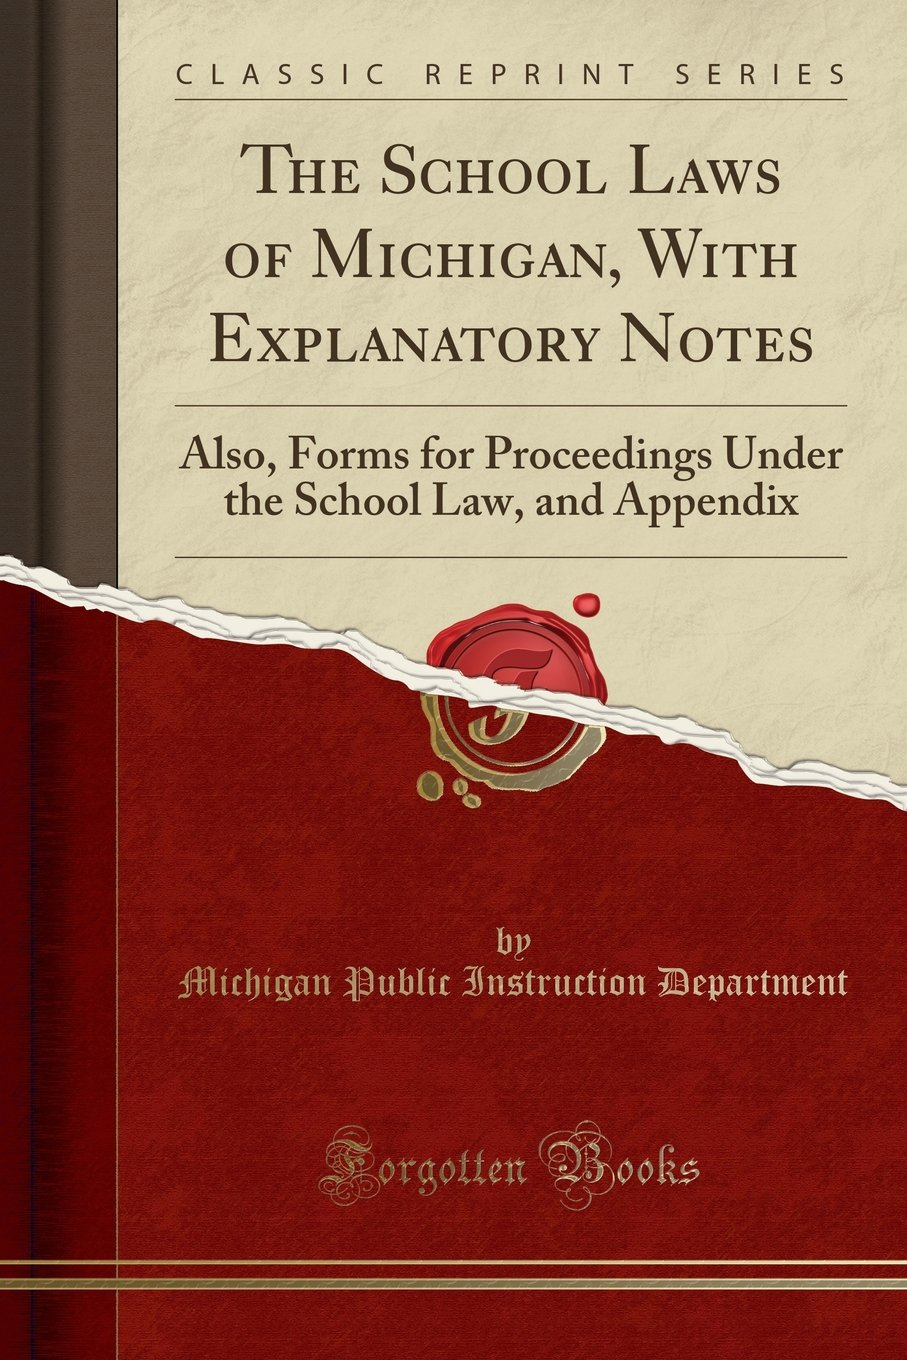 Download The School Laws of Michigan, With Explanatory Notes: Also, Forms for Proceedings Under the School Law, and Appendix (Classic Reprint) PDF